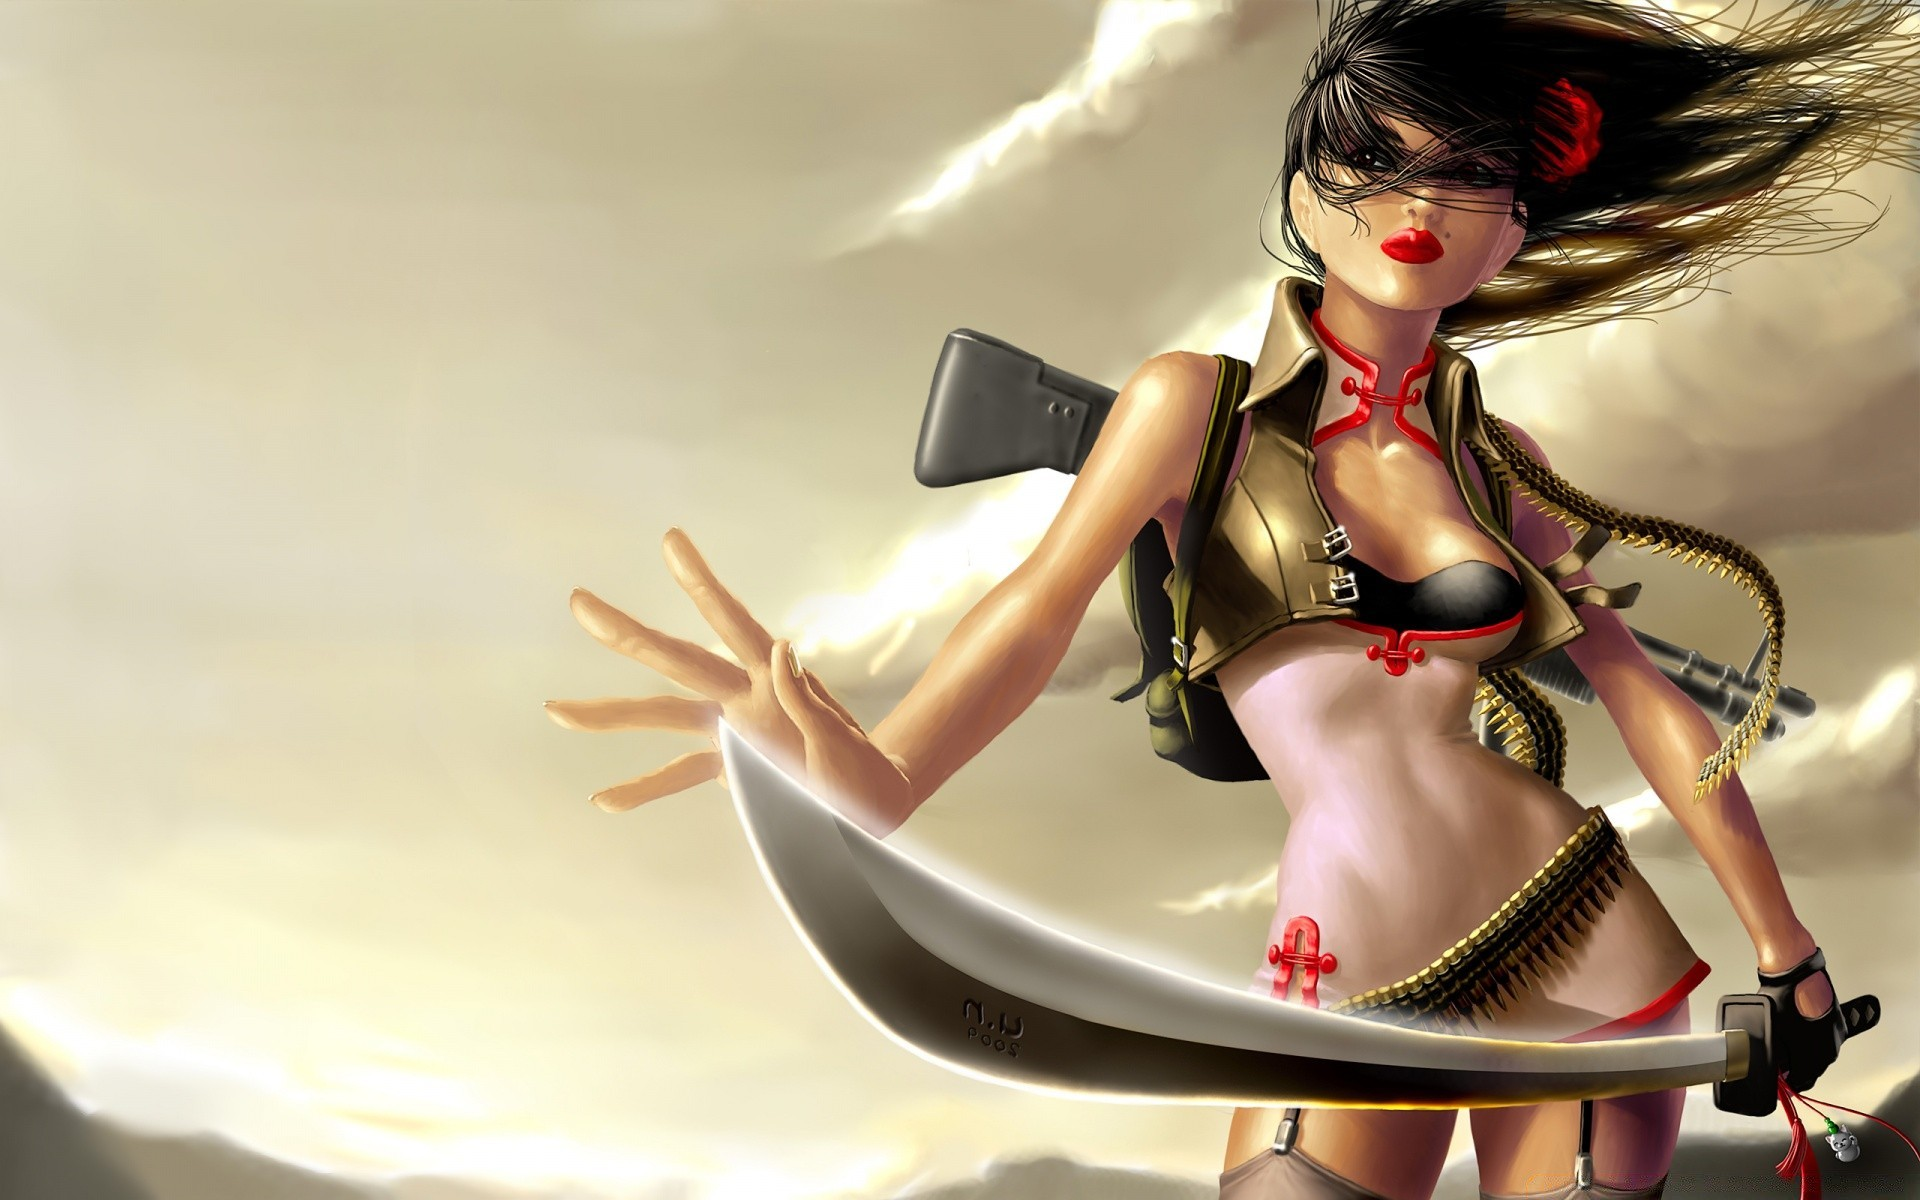 Sexy warrior girl screensaver porncraft image